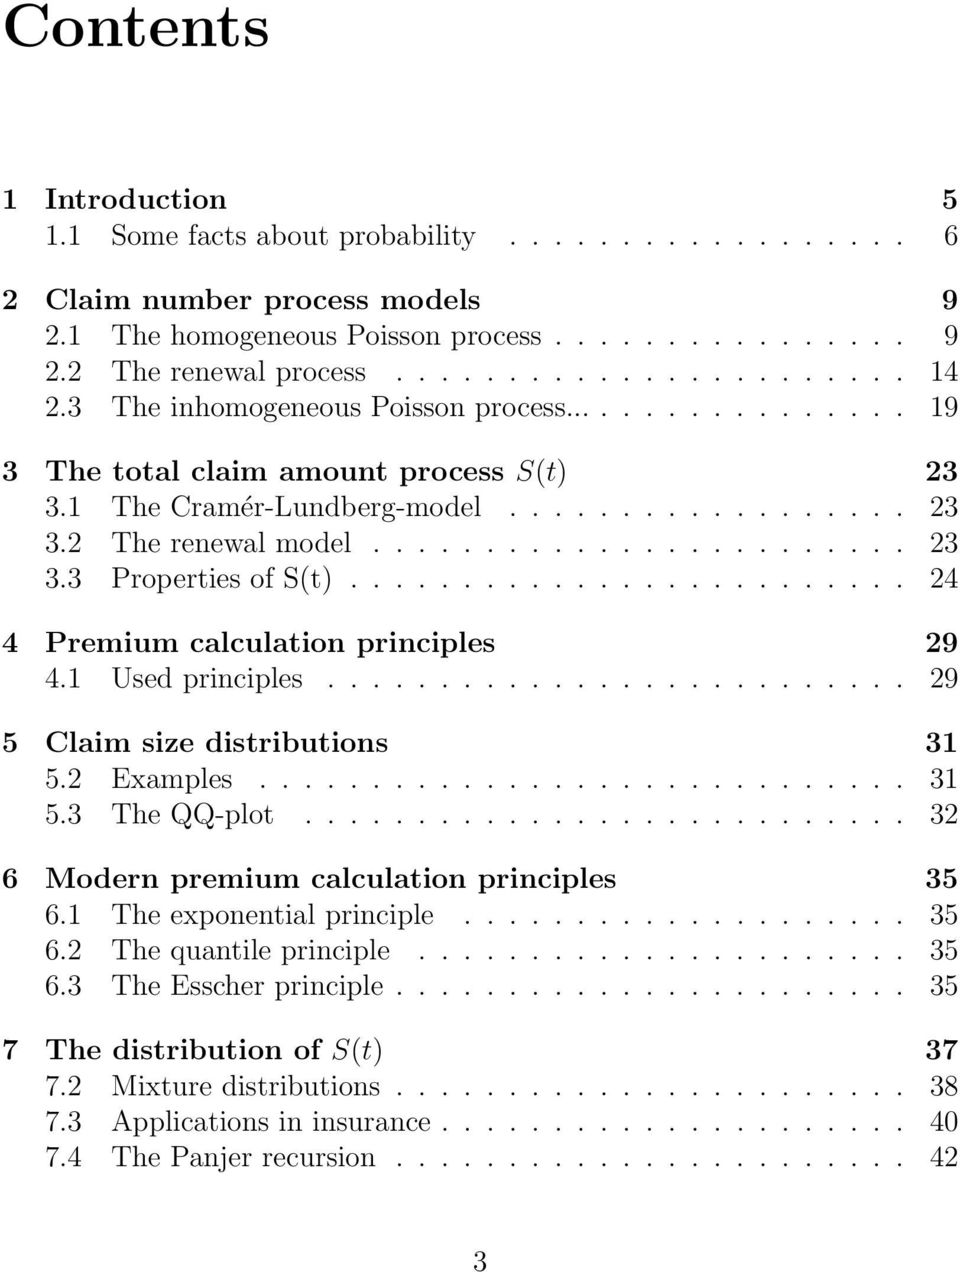 ........................ 24 4 Premium calculation principles 29 4.1 Used principles.......................... 29 5 Claim size distributions 31 5.2 Examples............................. 31 5.3 The QQ-plot.